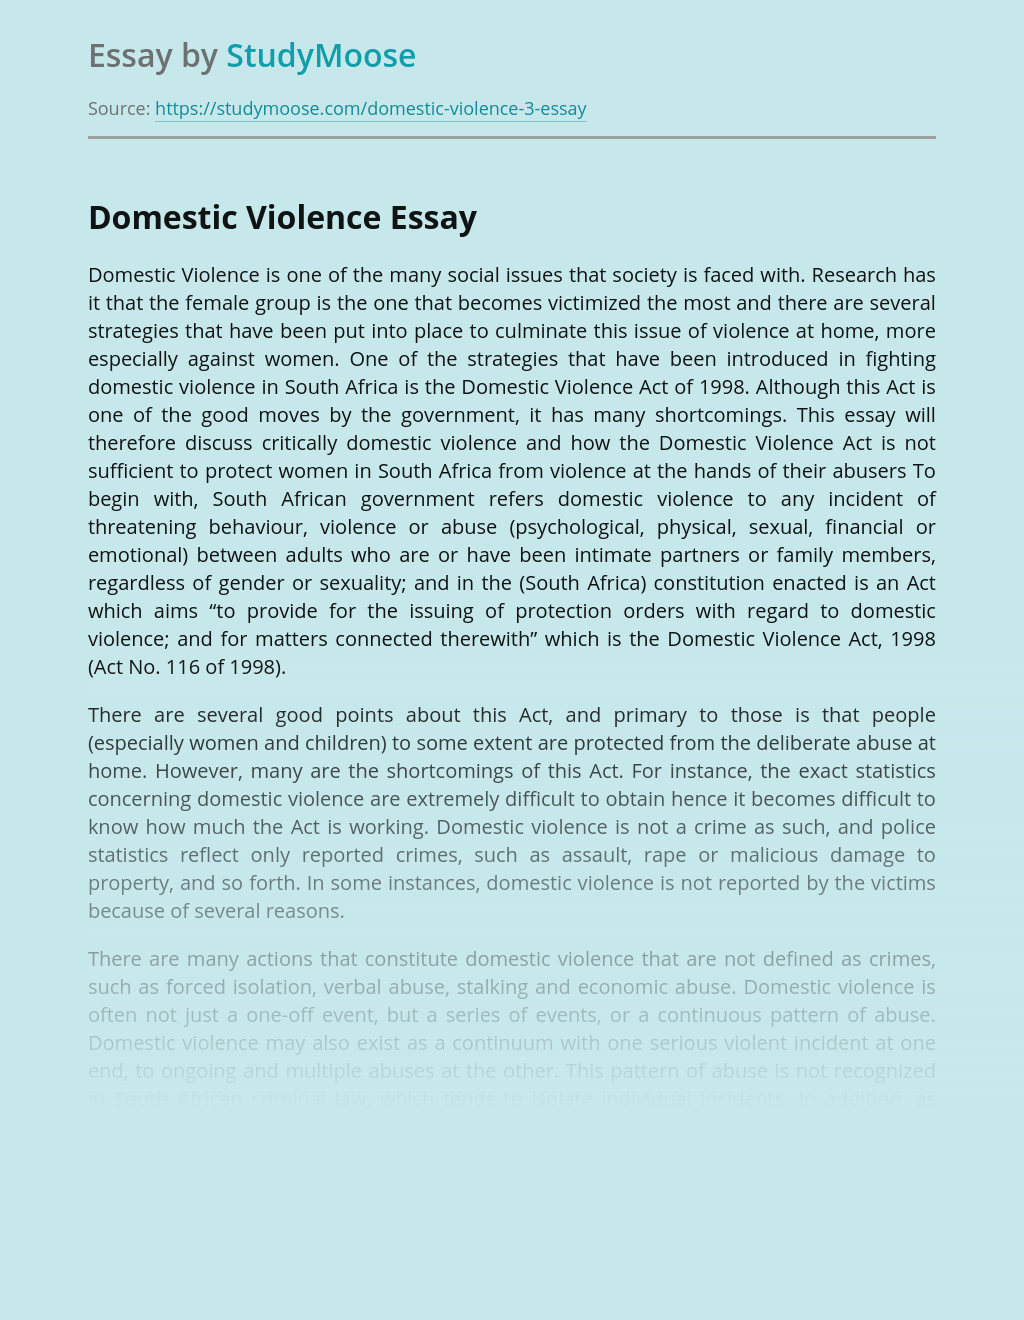 Domestic Violence Is one of the Many Social Issues